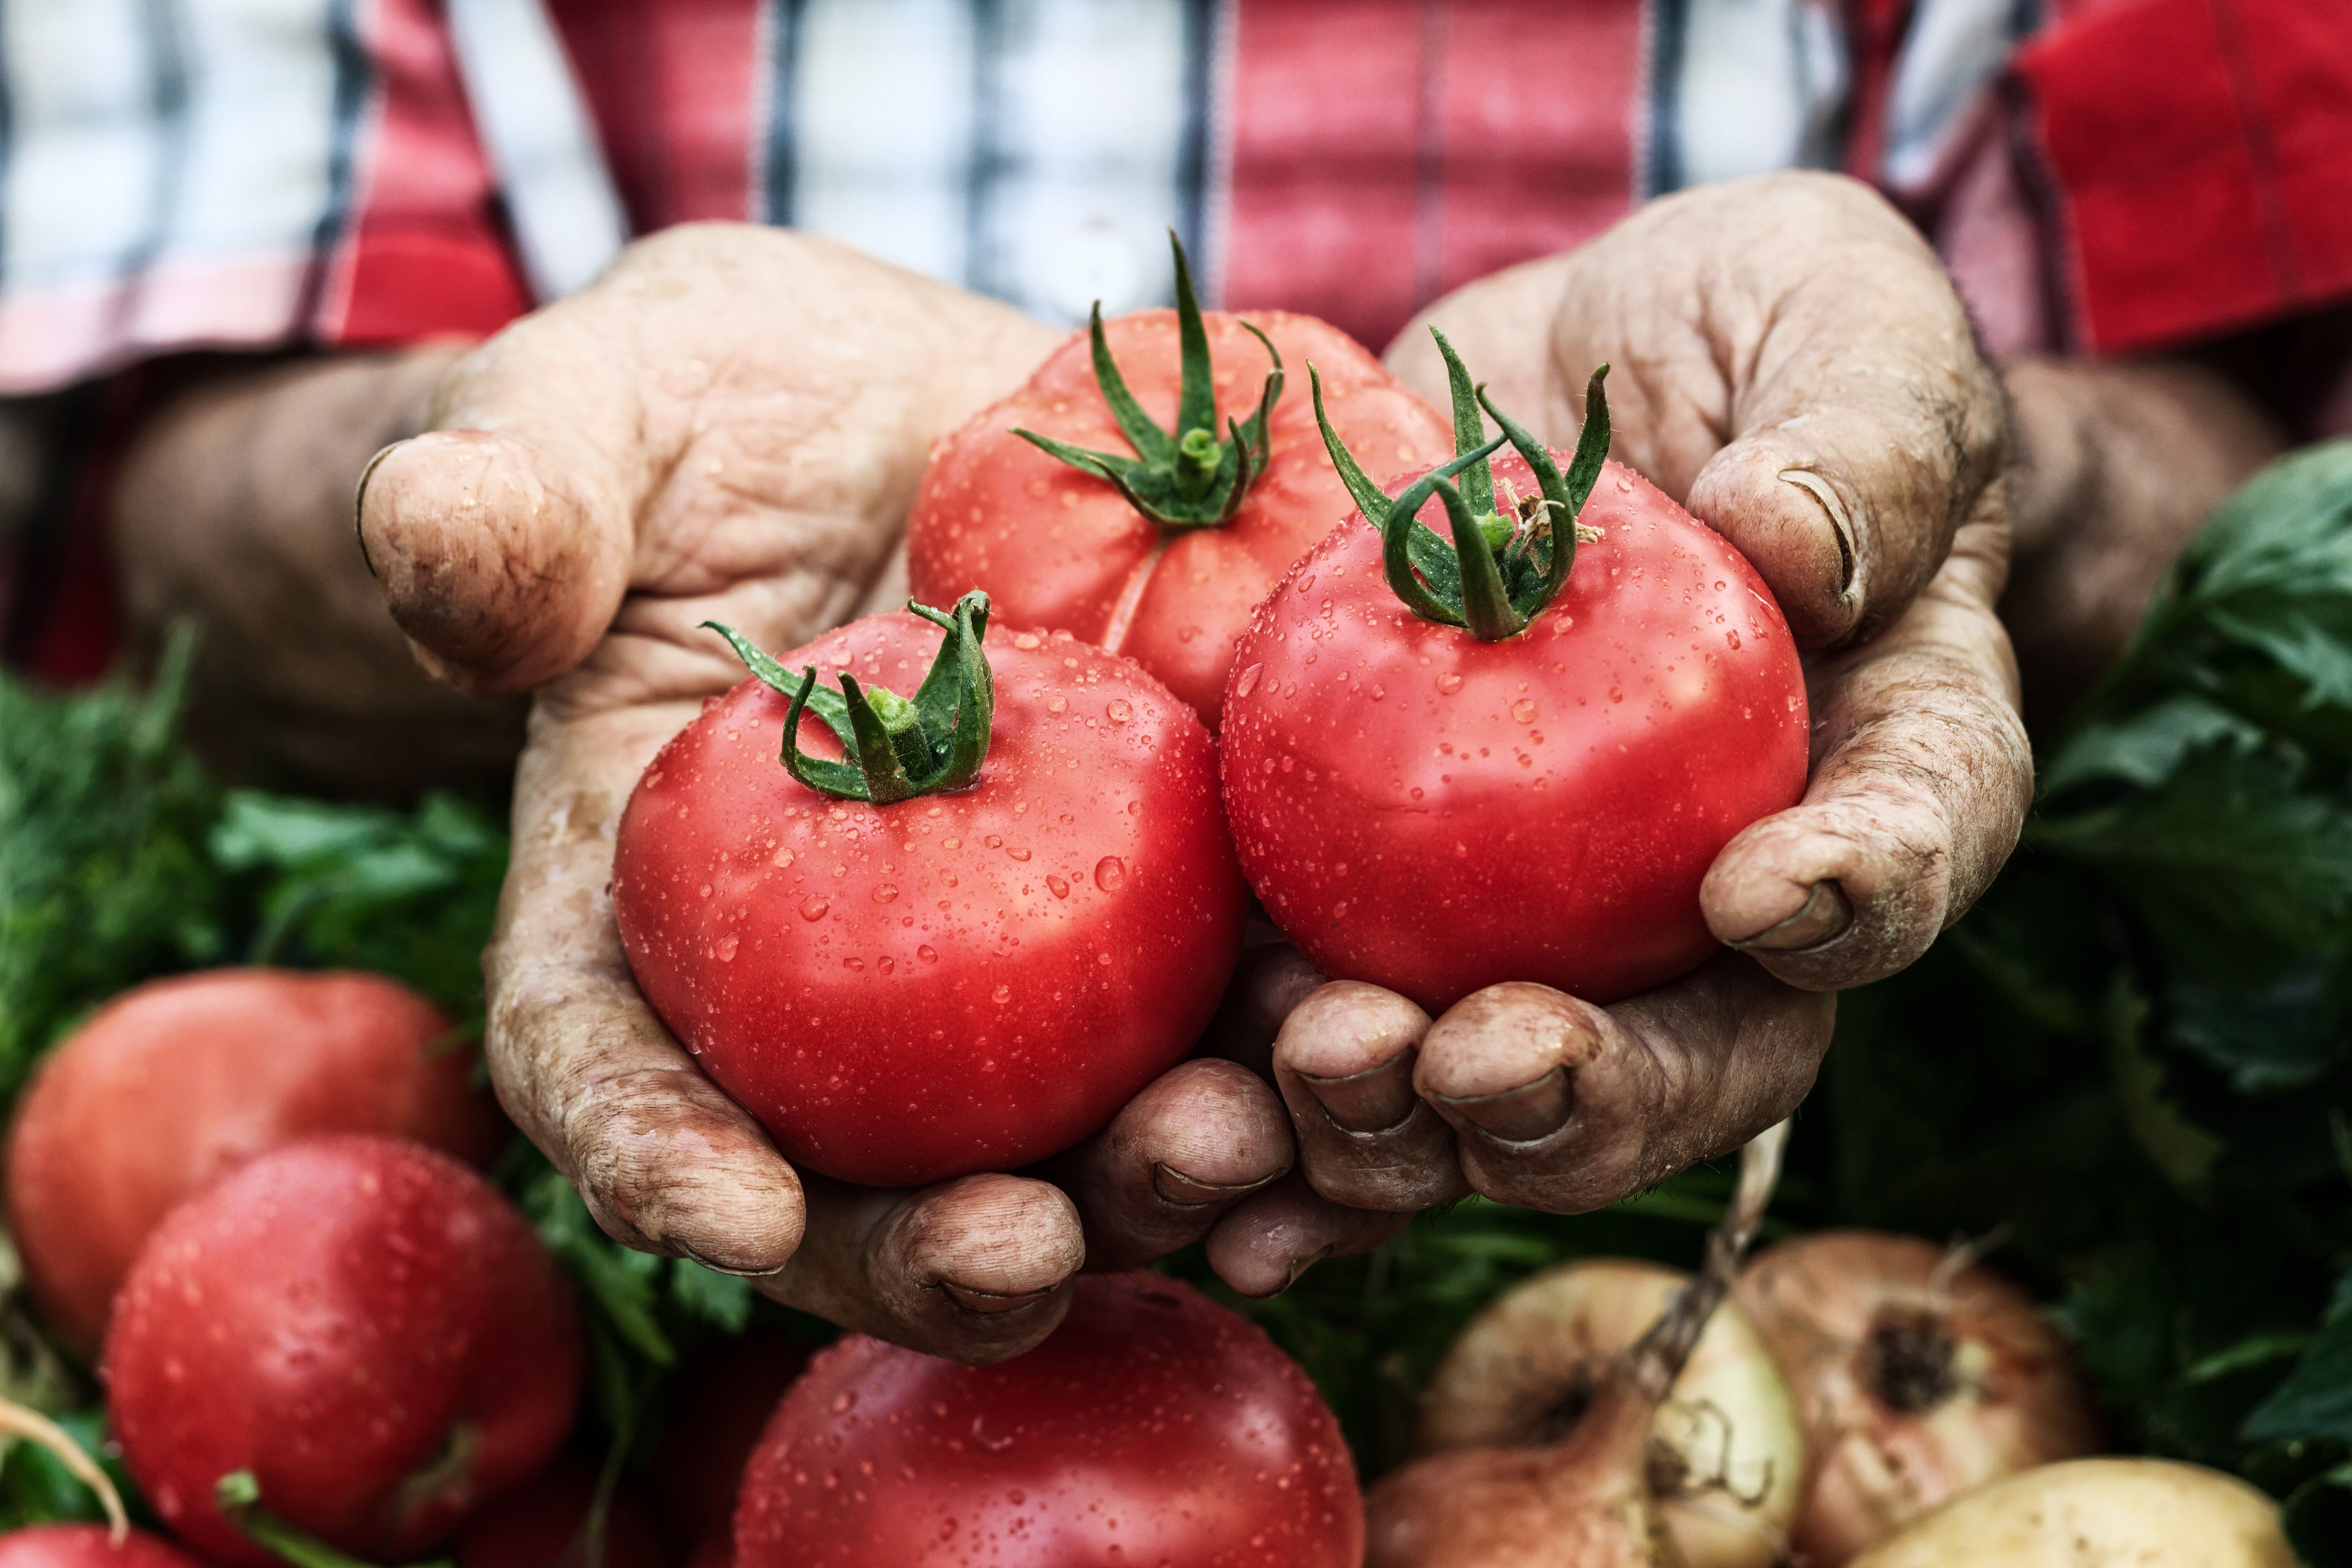 A Diet Rich In Tomatoes Cut Skin Cancer Rates By Half, But Only In Male